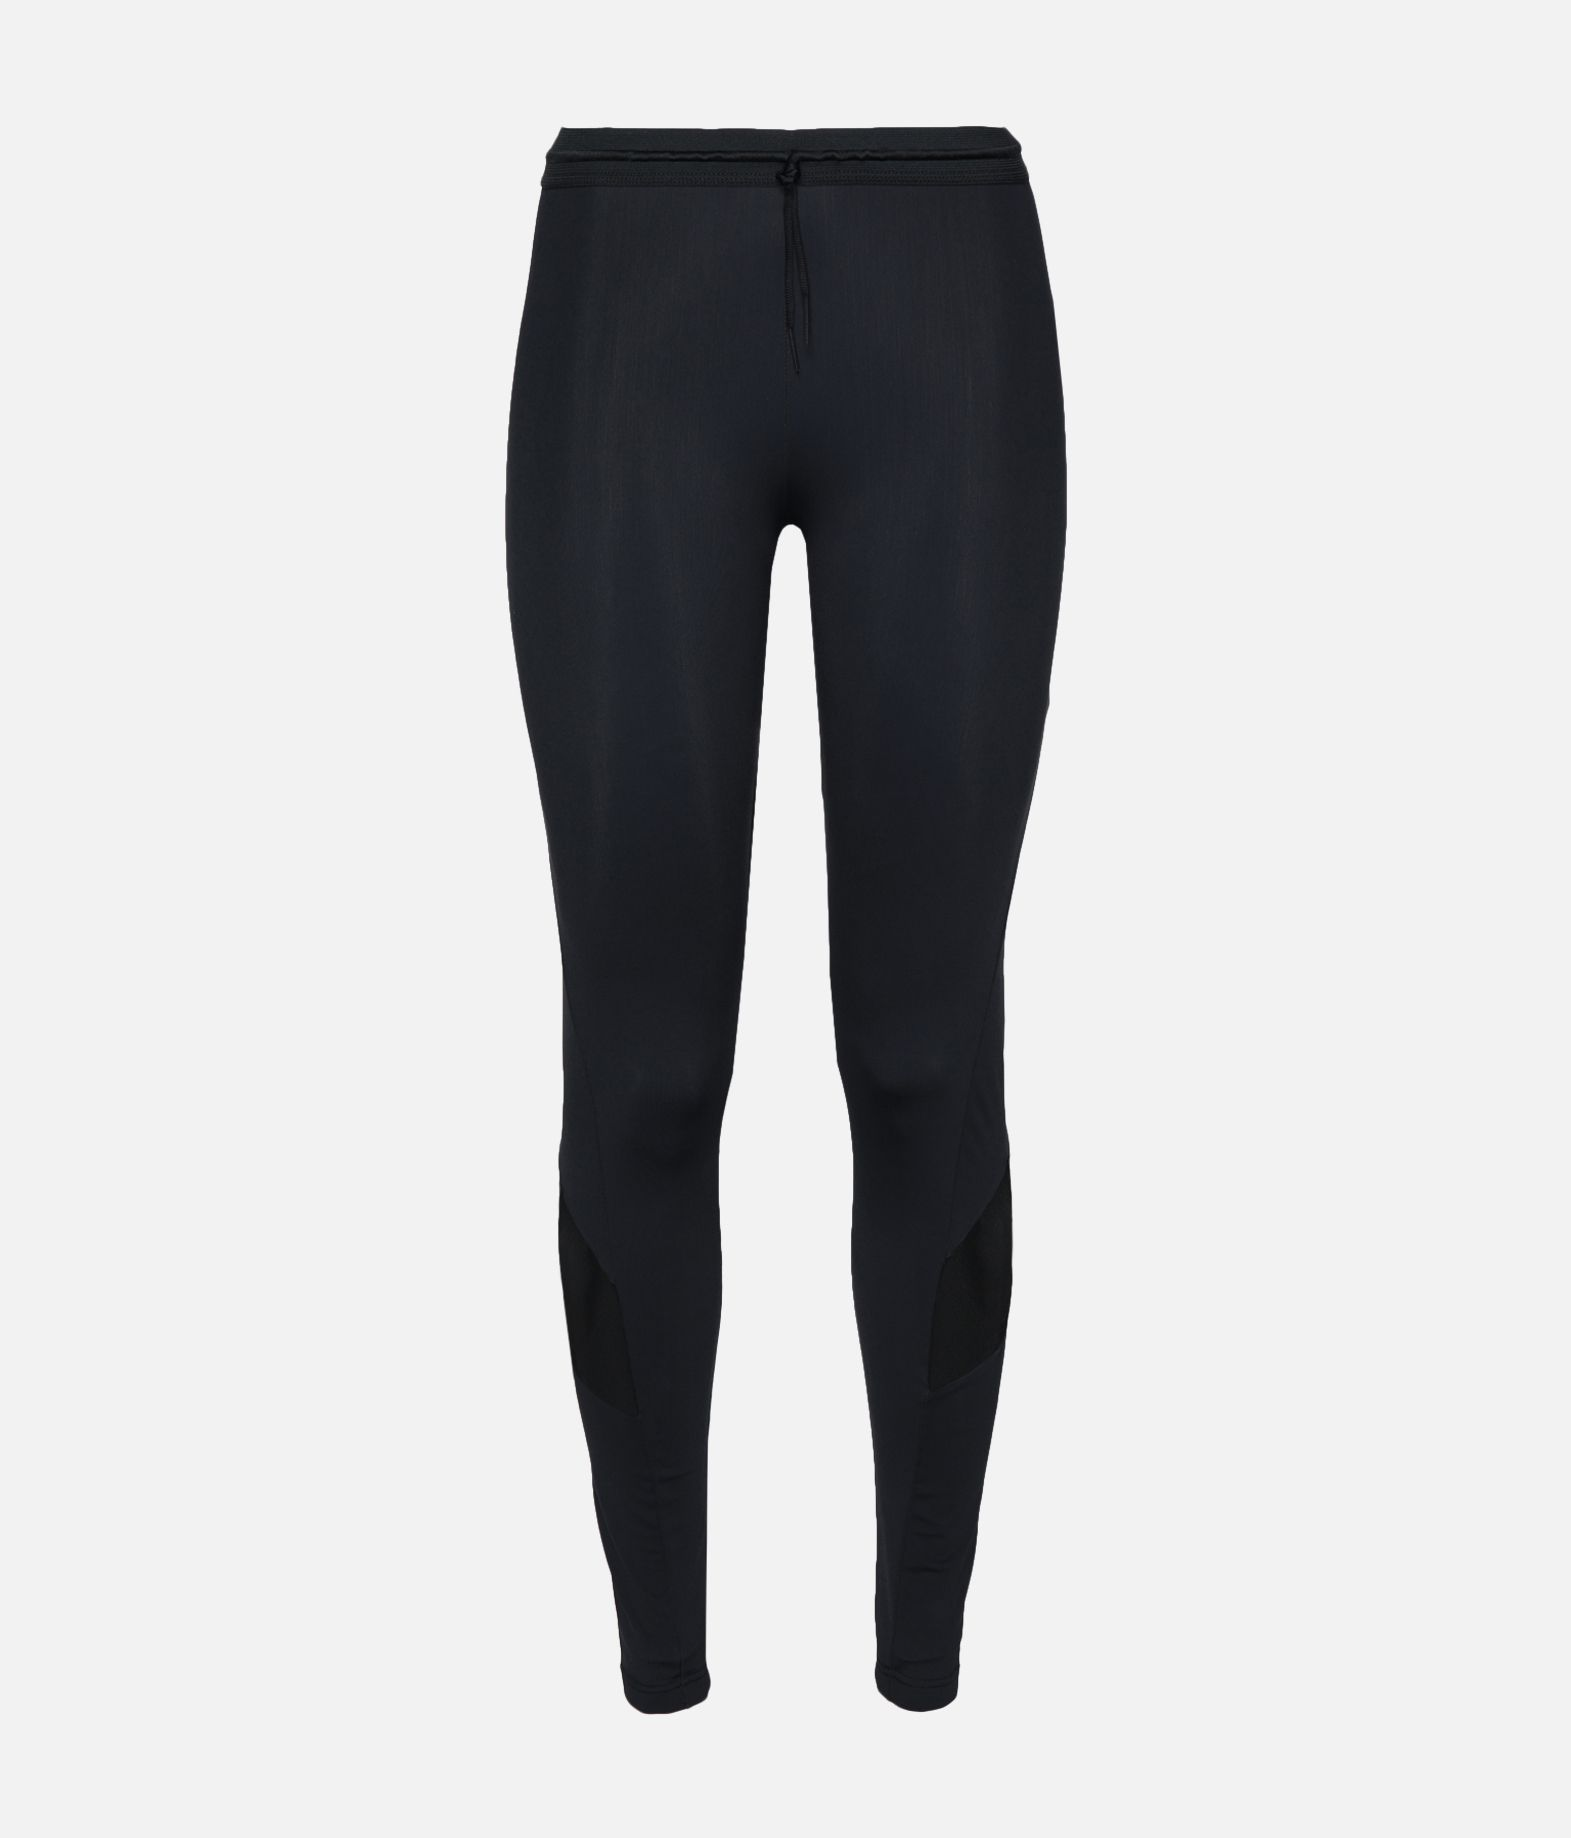 Y-3 Y-3 New Classic Tights Leggings Woman f